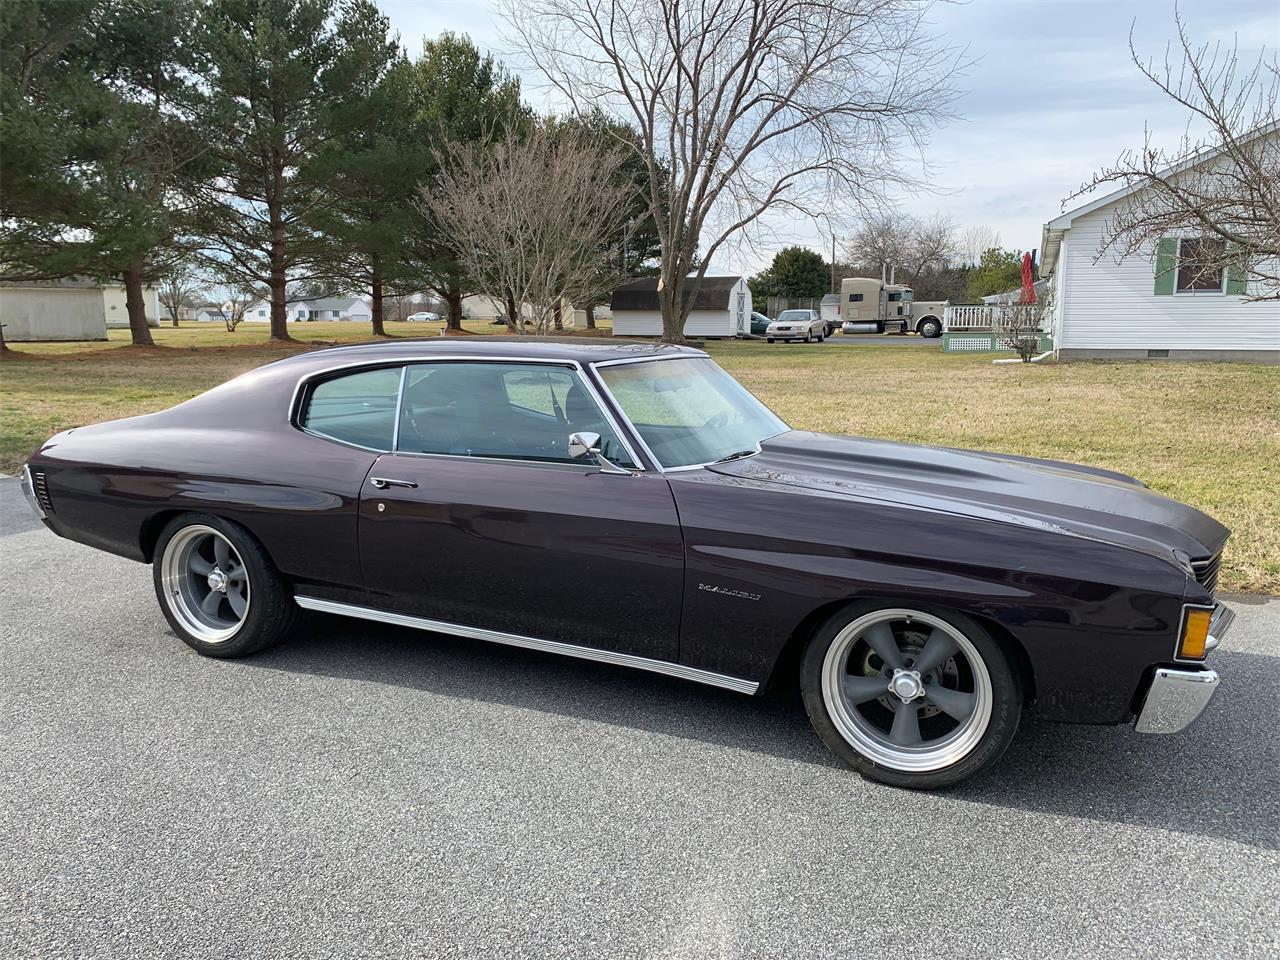 Large Picture of Classic 1972 Chevrolet Chevelle Malibu located in Ridgely Maryland Offered by a Private Seller - QK1N